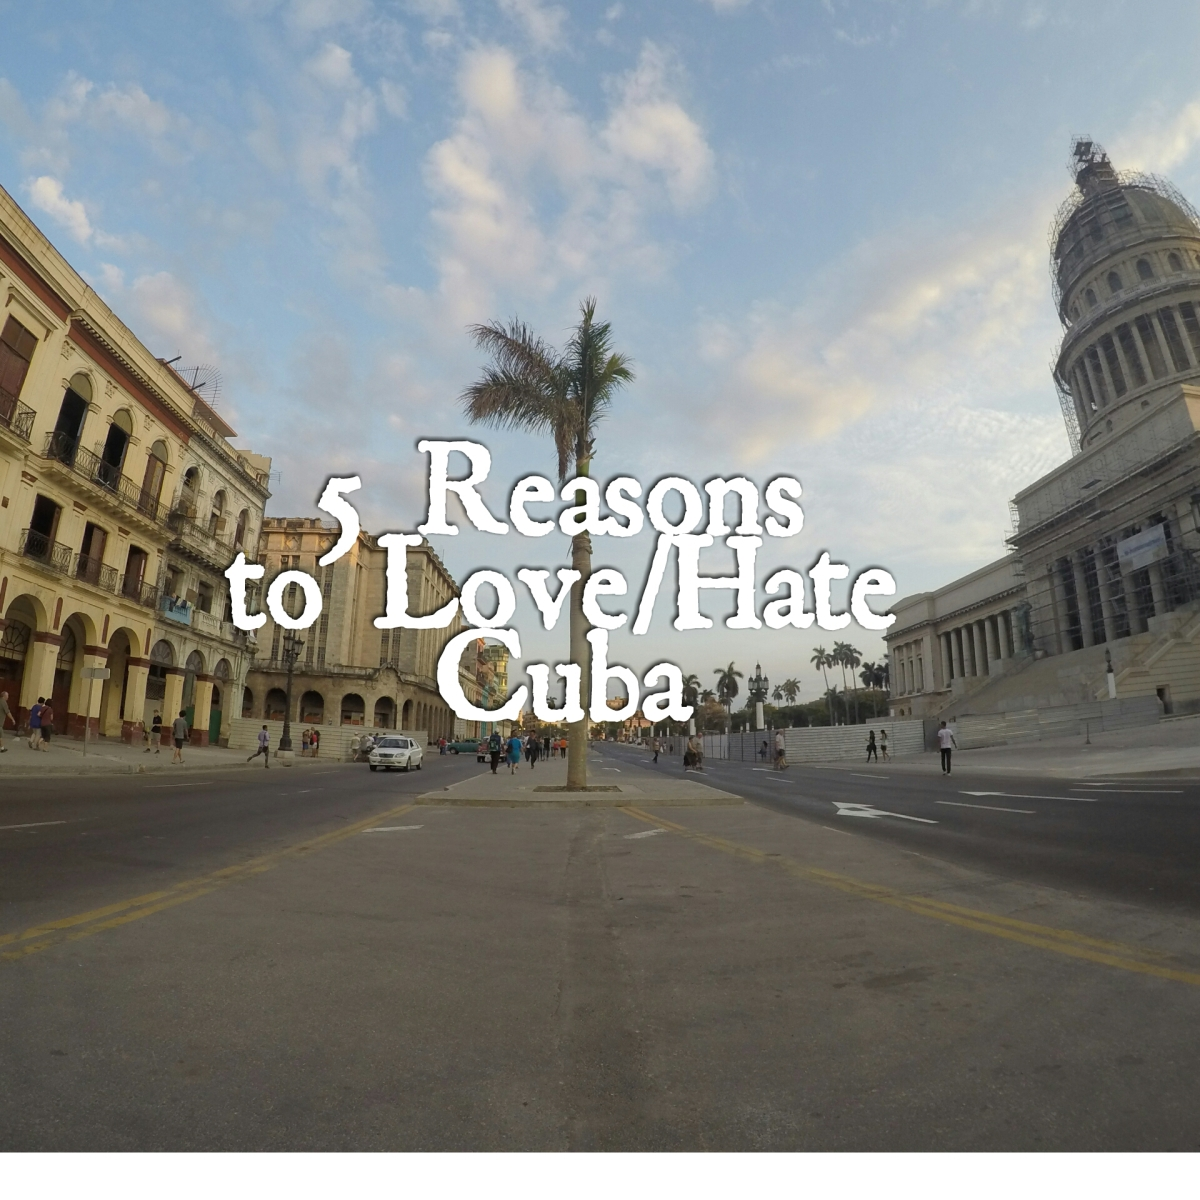 5 Reasons to Love/Hate Cuba